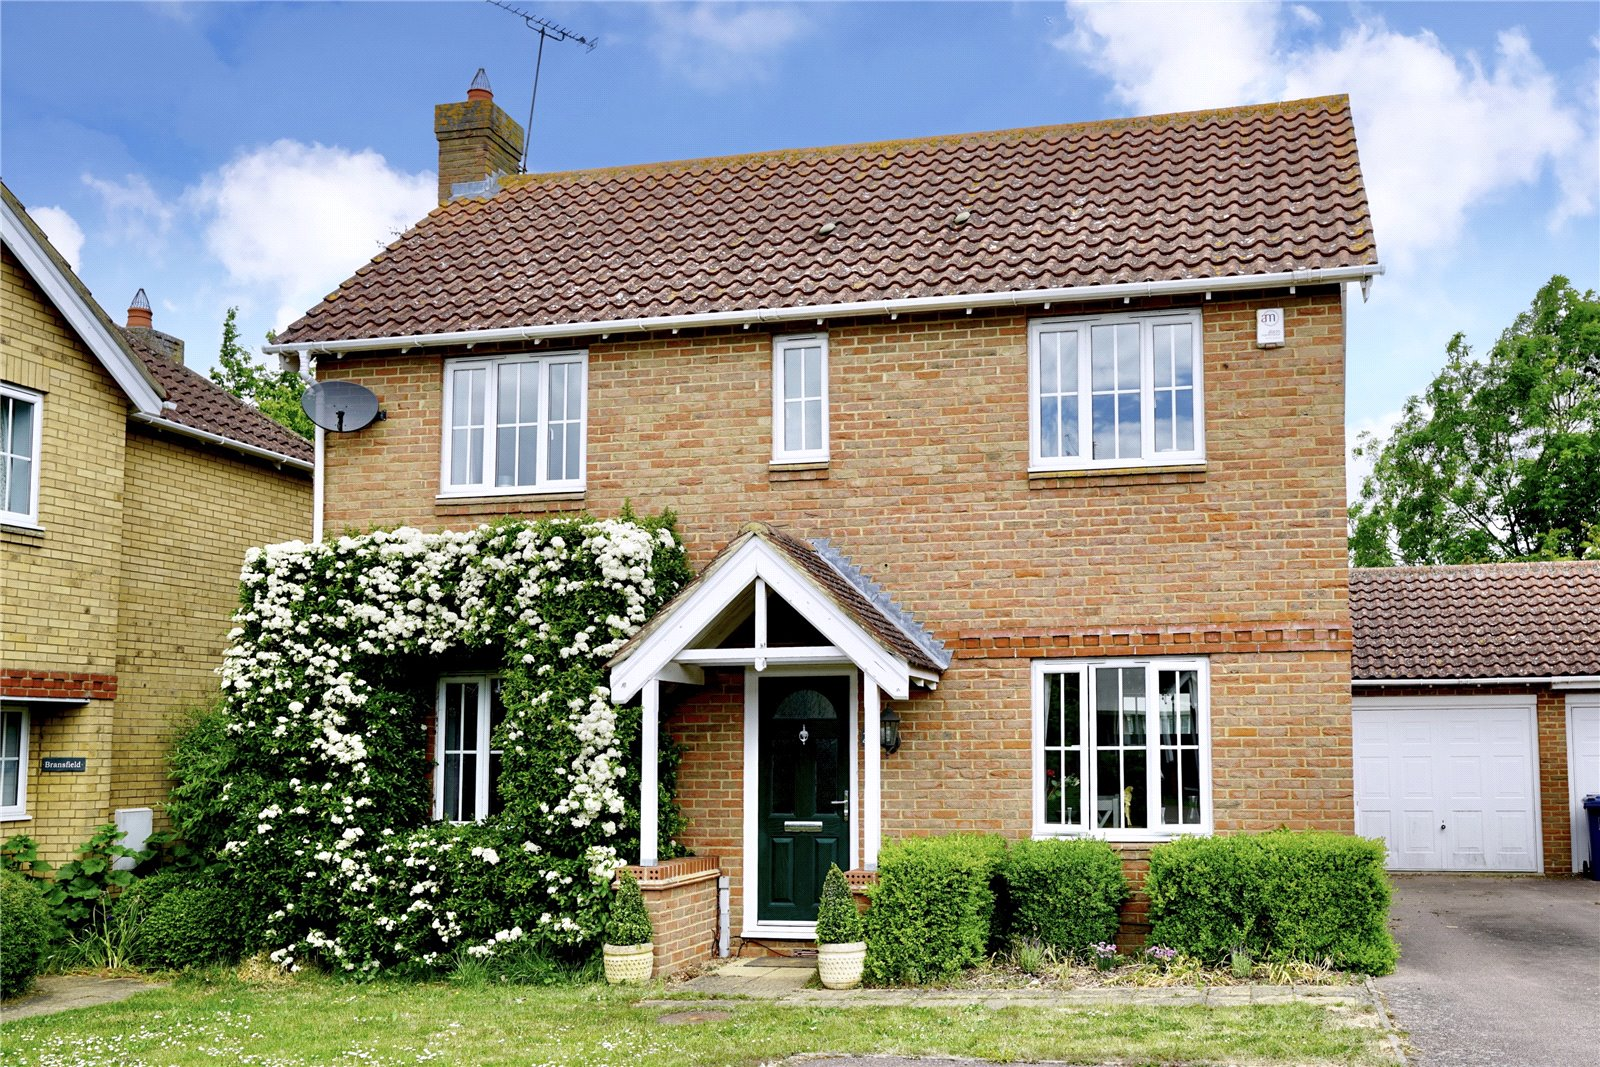 3 bed house for sale in Over, CB24 5TZ, CB24